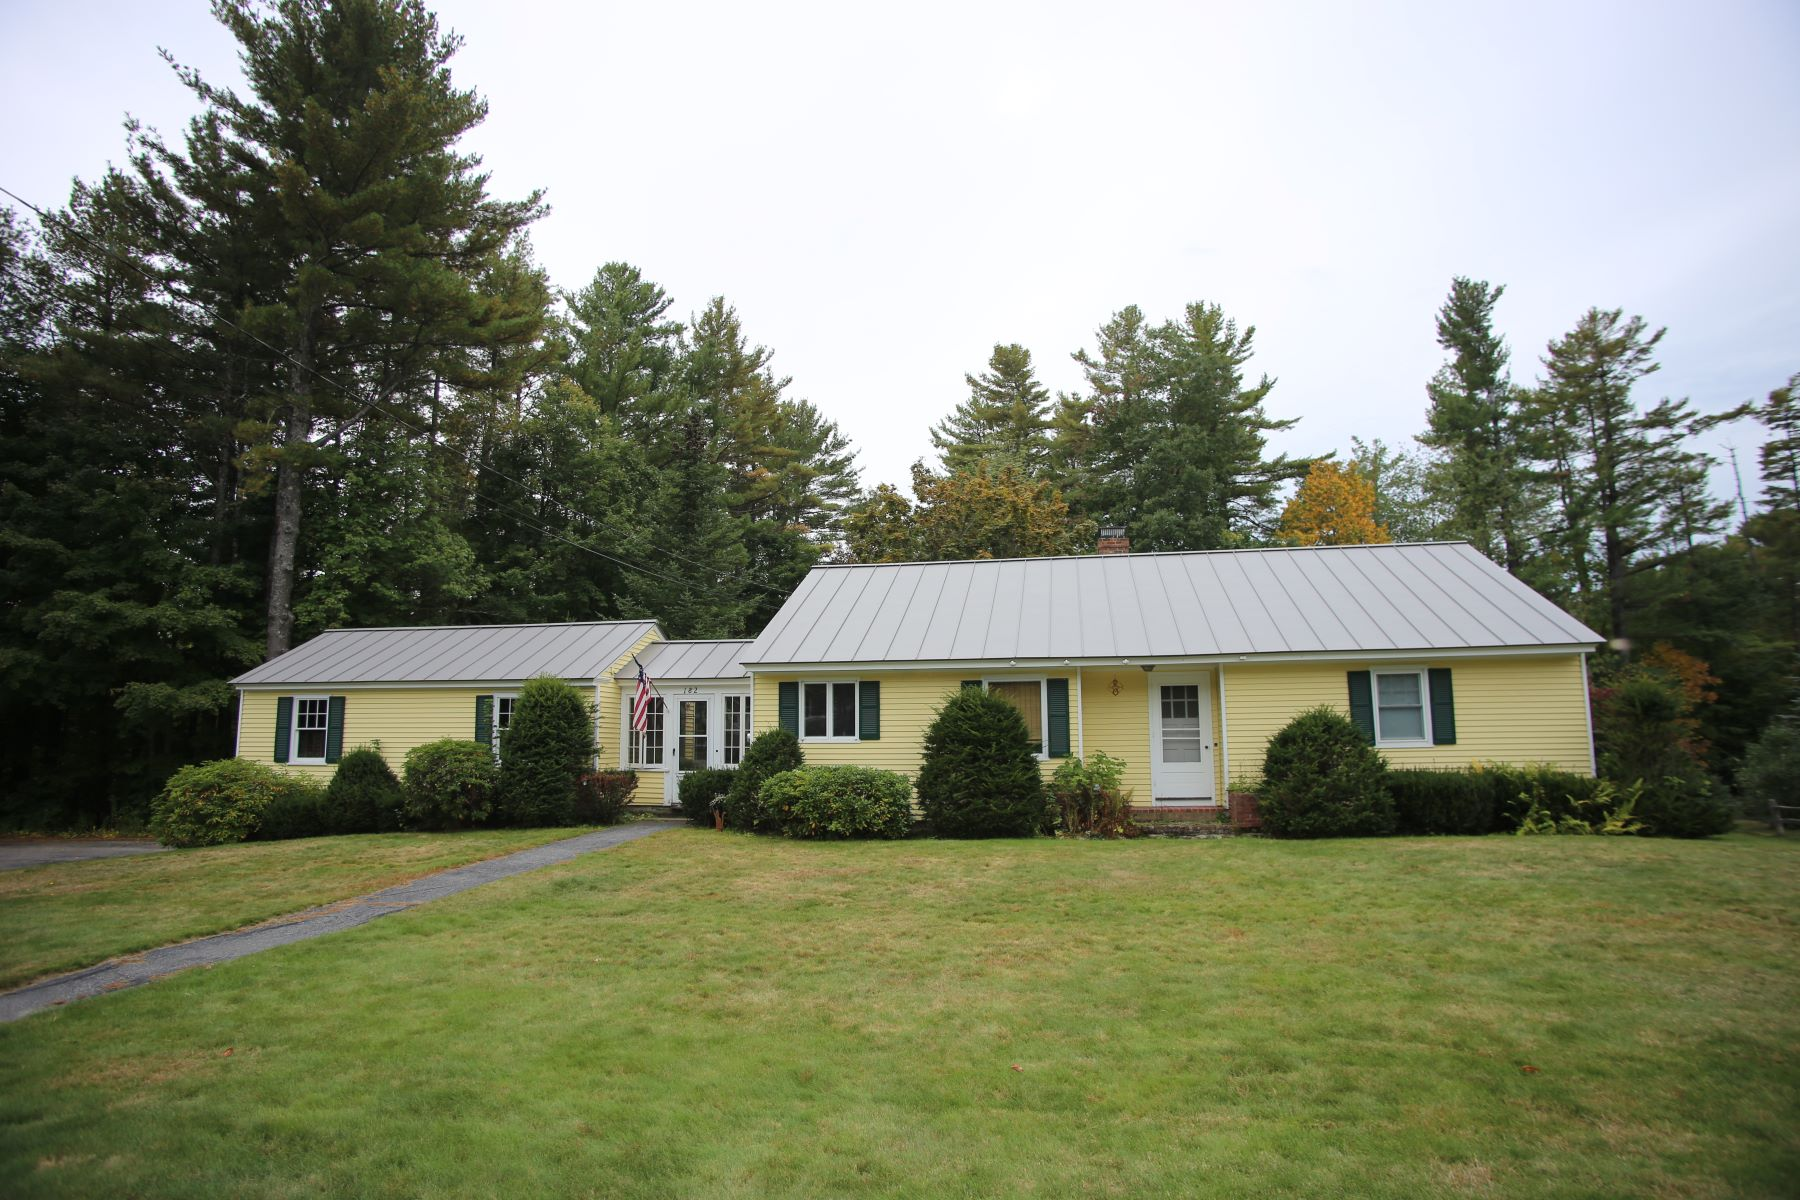 Single Family Homes for Active at 182 Everett Park, New London 182 Everett Park New London, New Hampshire 03257 United States